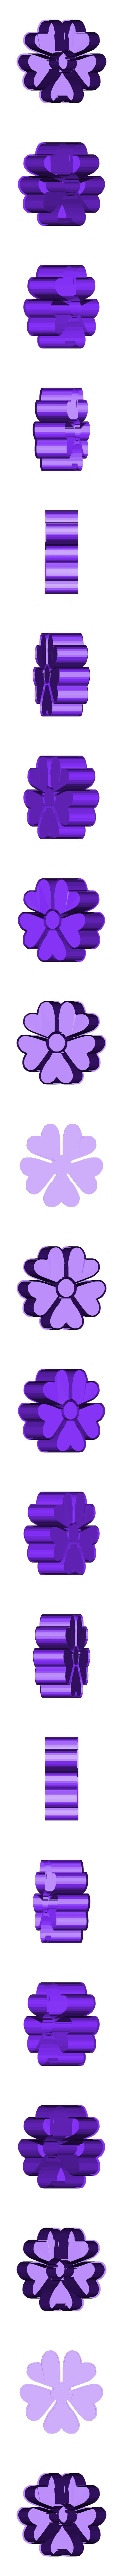 FLOWER BOX.stl Download free STL file Flower Box • 3D printing template, solunkejagruti